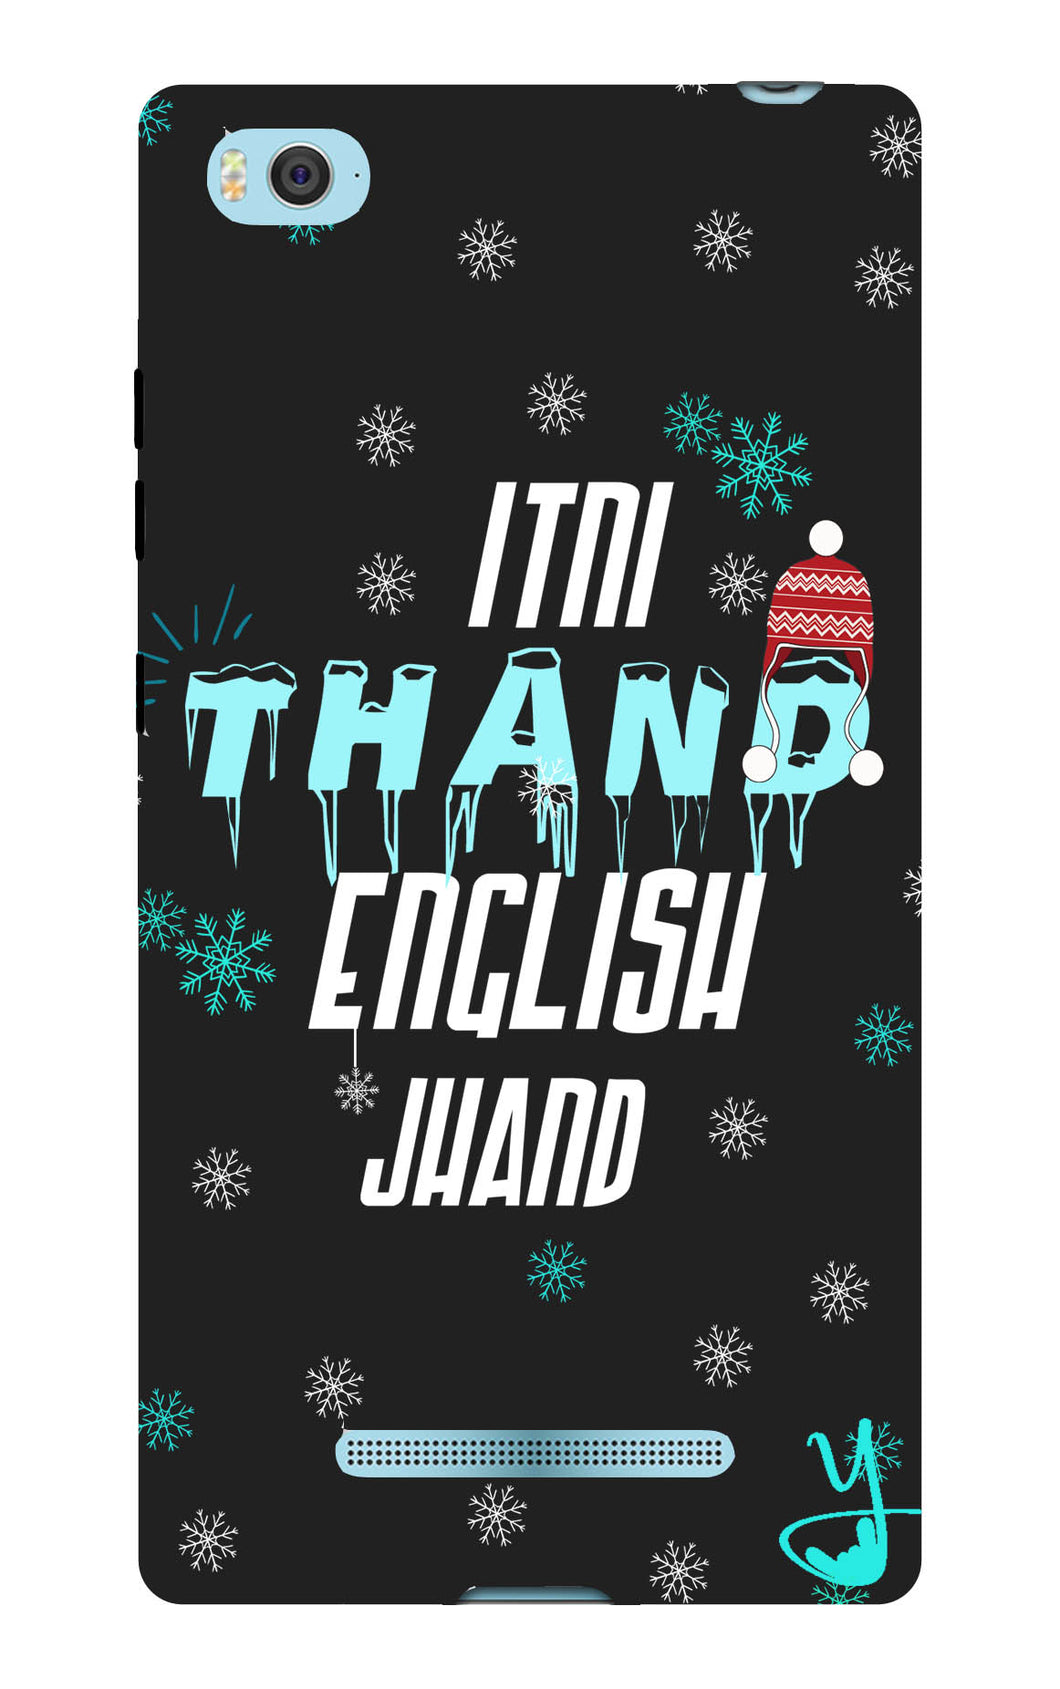 Itni Thand edition for Xiaomi Mi 4i